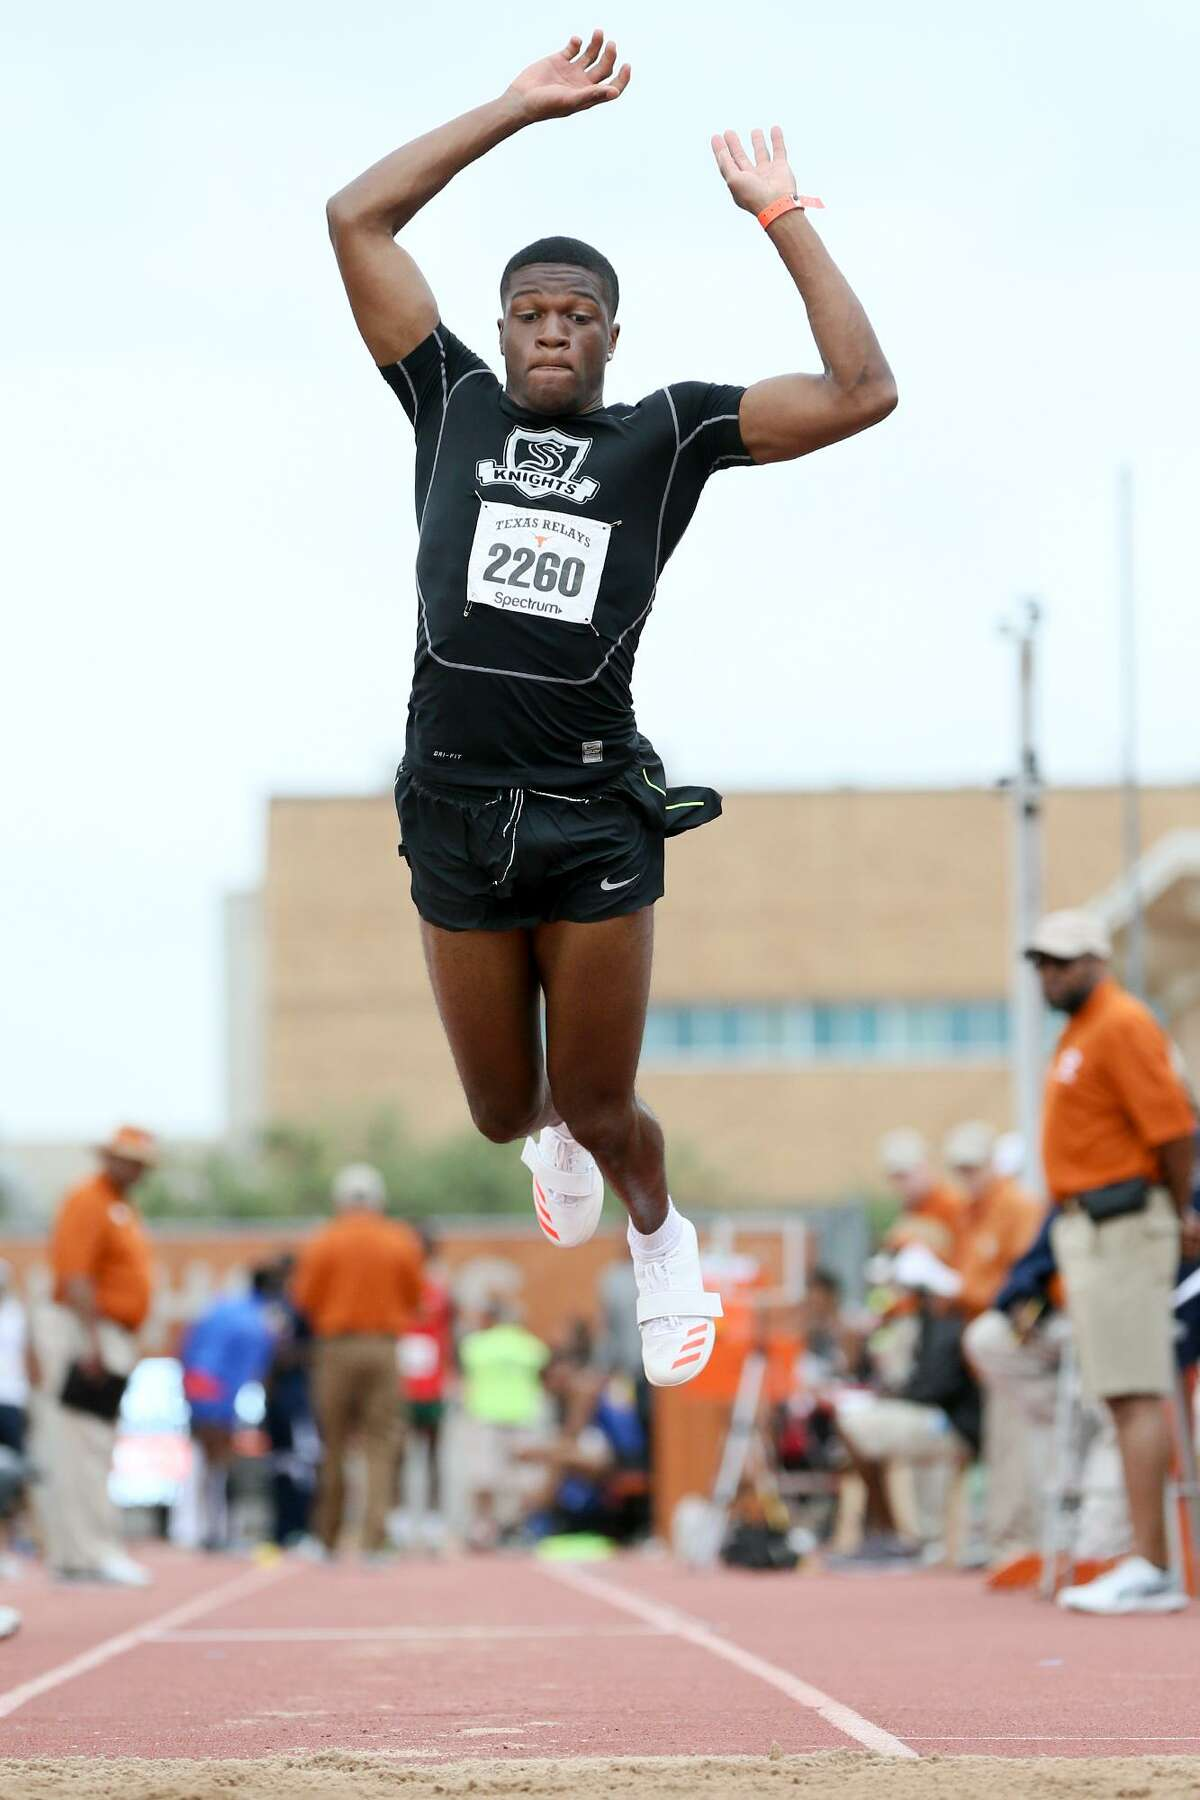 Steele's Tavian Carter jumps in the high school division II boys triple jump during the 2017 Texas Relays at Mike A. Myers Stadium in Austin on Saturday, April 1, 2017. Carter finished sixth in the event with a jump of 46 feet, 11.50 inches. MARVIN PFEIFFER/ mpfeiffer@express-news.net